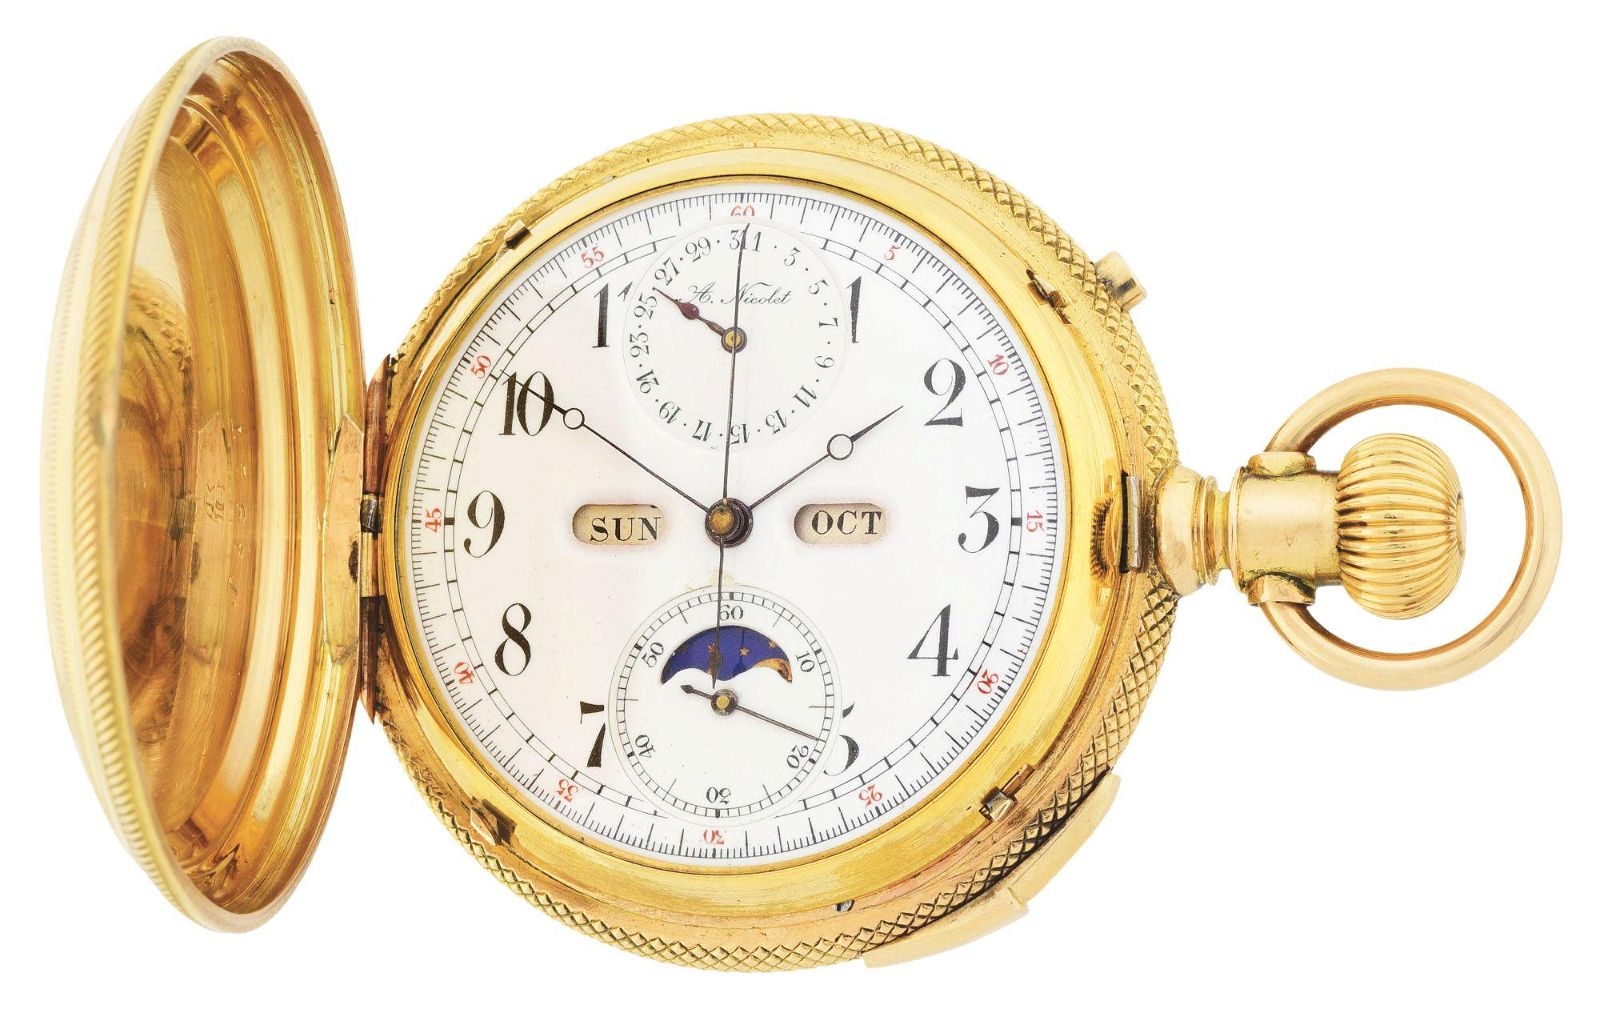 FINE 18K GOLD A. NICOLET SWISS GRAND COMPLICATIONS